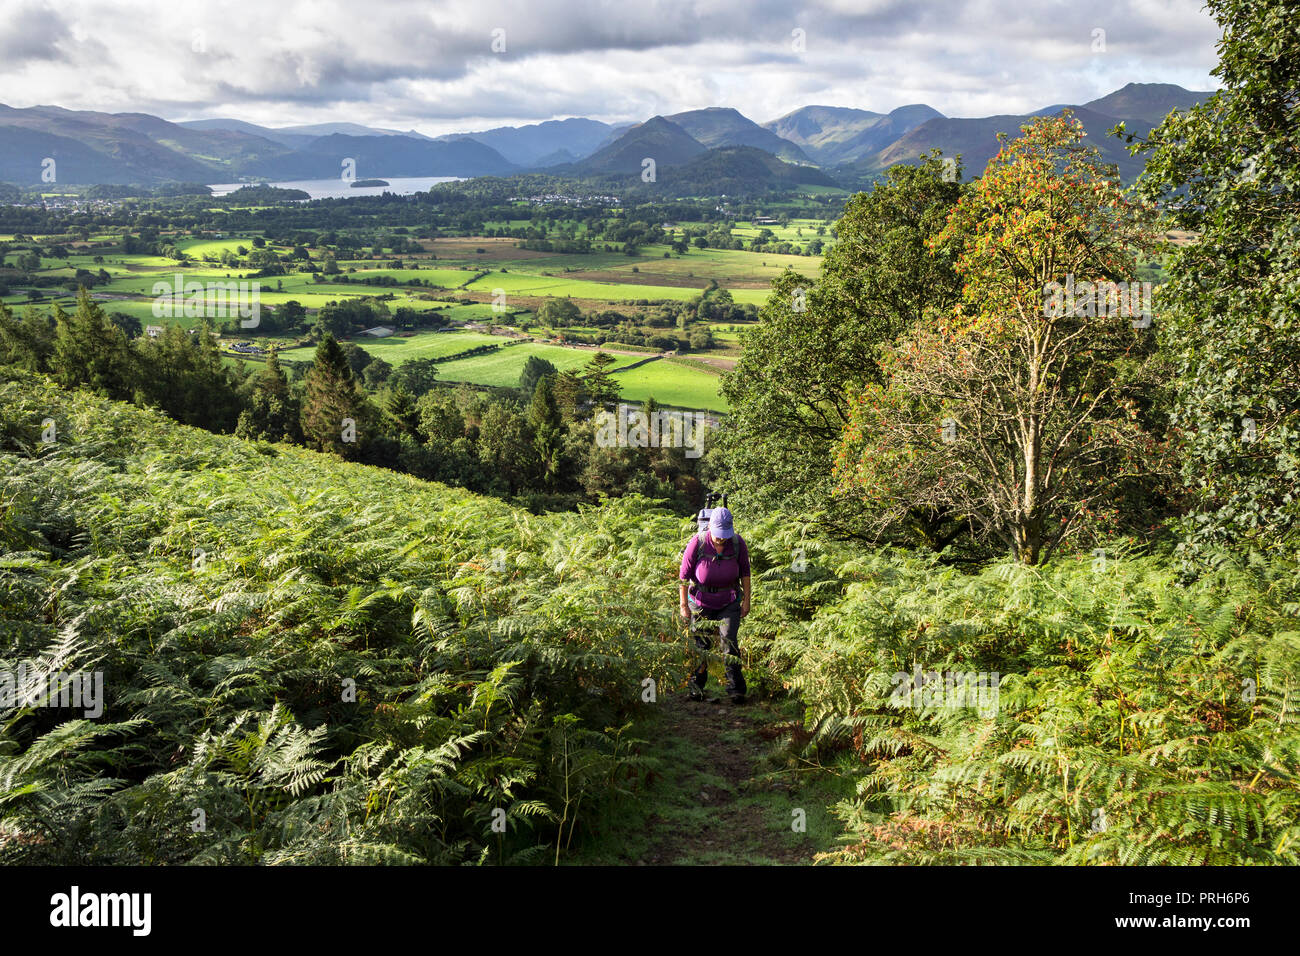 Walker on the Allerdale Ramble Path below Dodd in the Thornthwaite Forest (Lyzzick Wood) with Derwent Water in the Background, Lake District, UK. - Stock Image